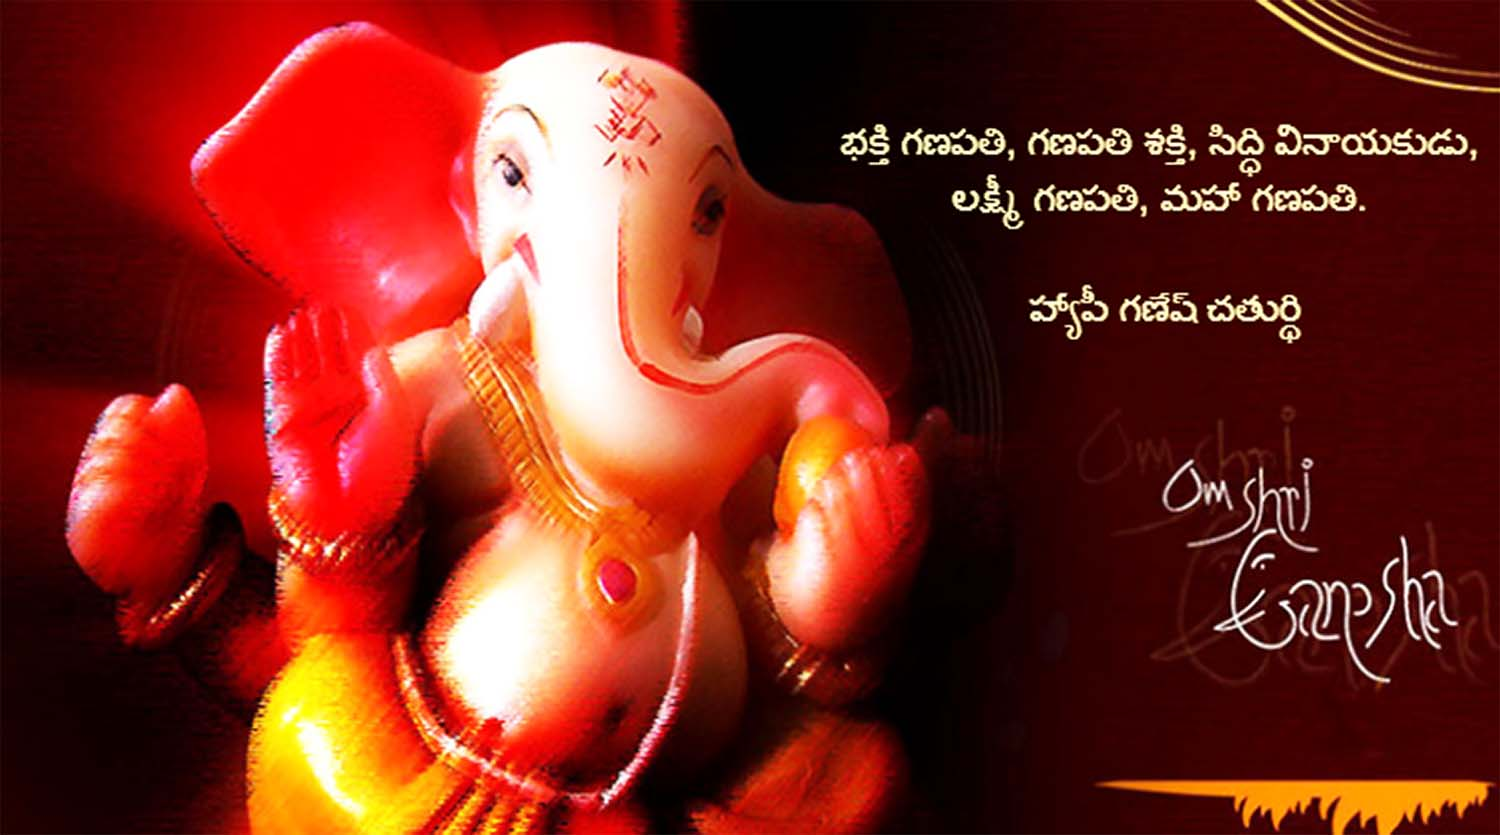 Happy Vinayaka chaturthi wishes in telugu